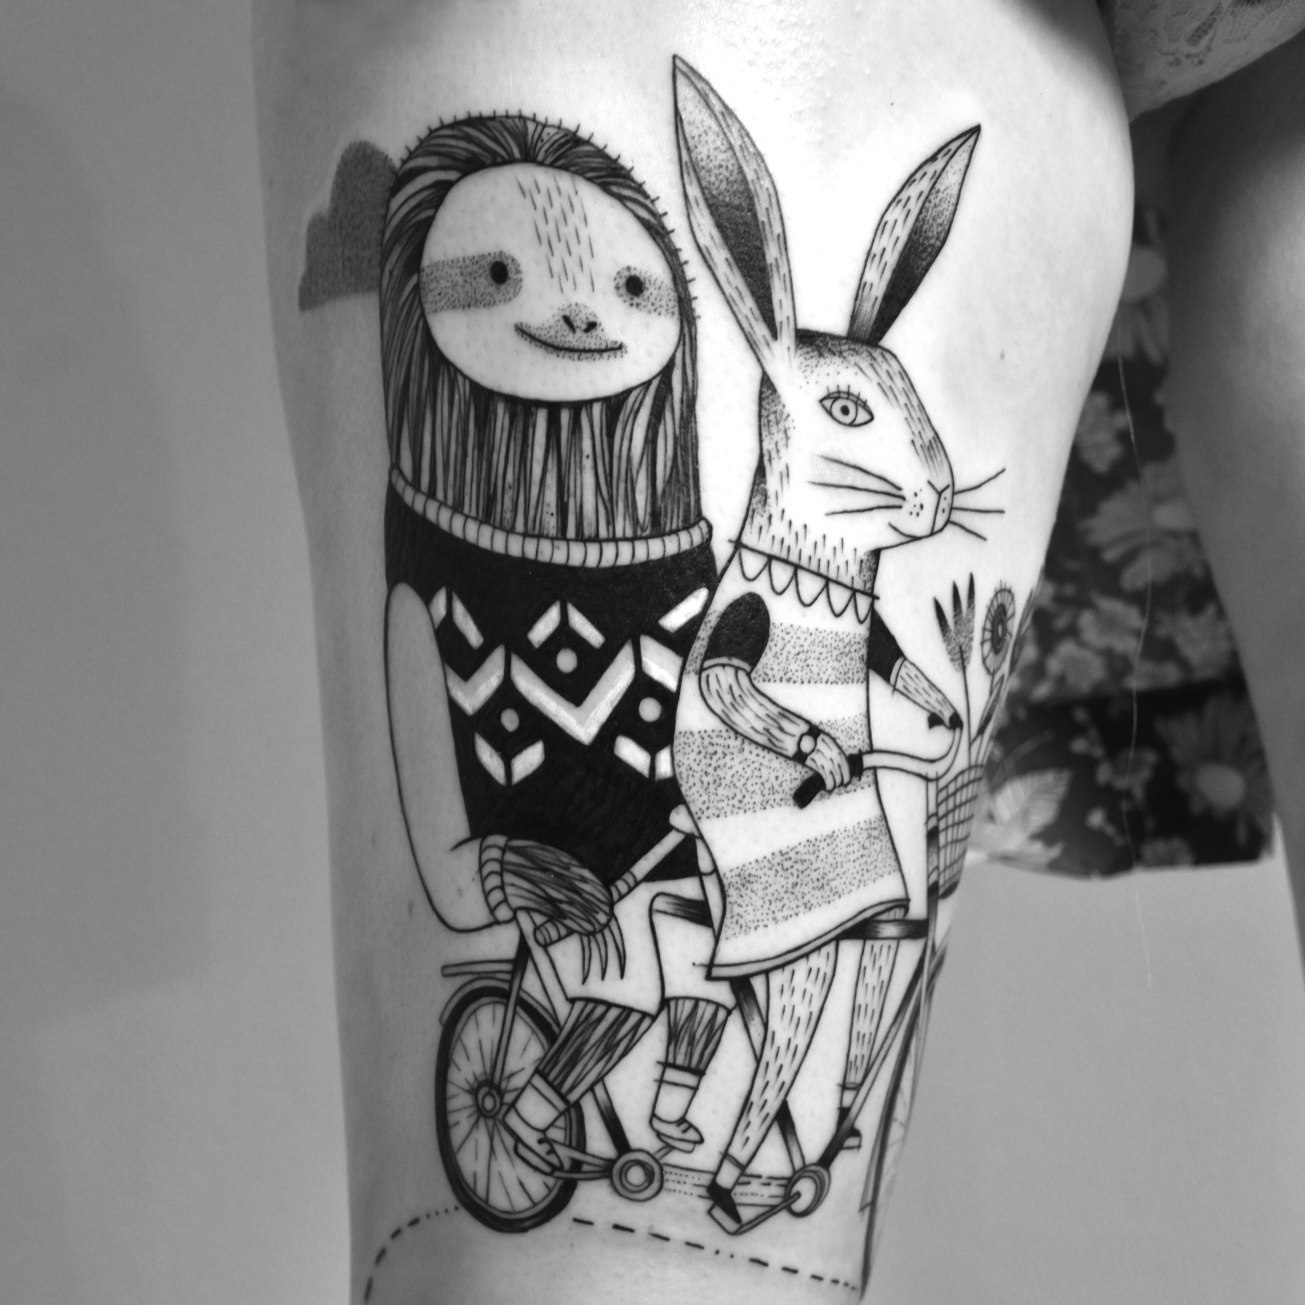 miriam_frank_tattoo_sloth